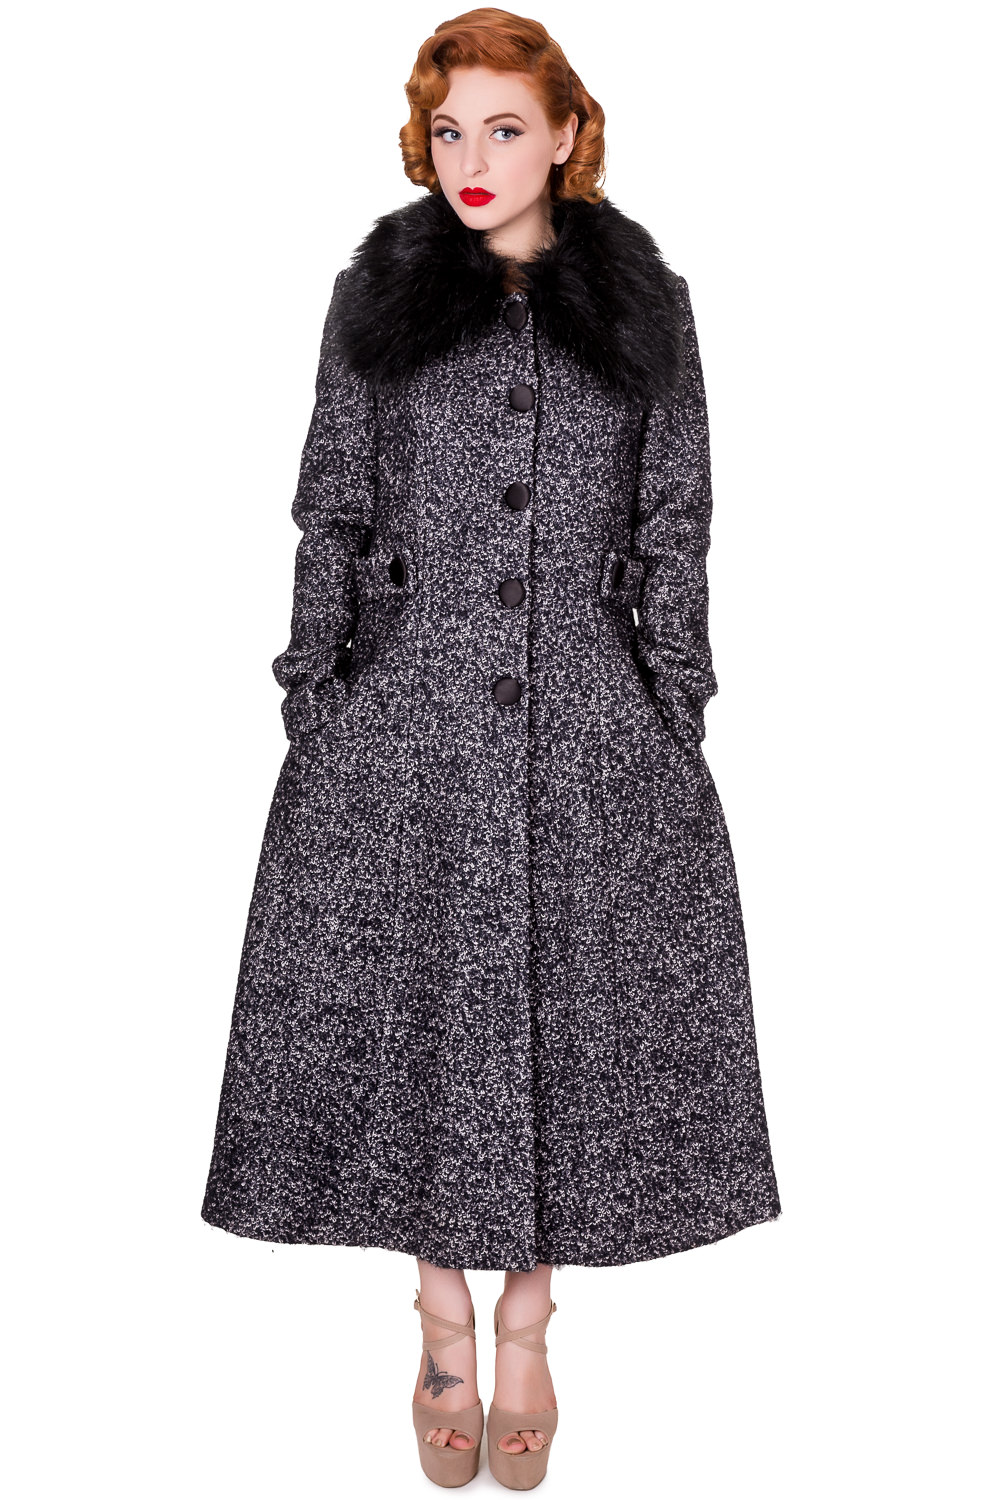 Banned By Dancing Days Simple Game Grey Winter Coat